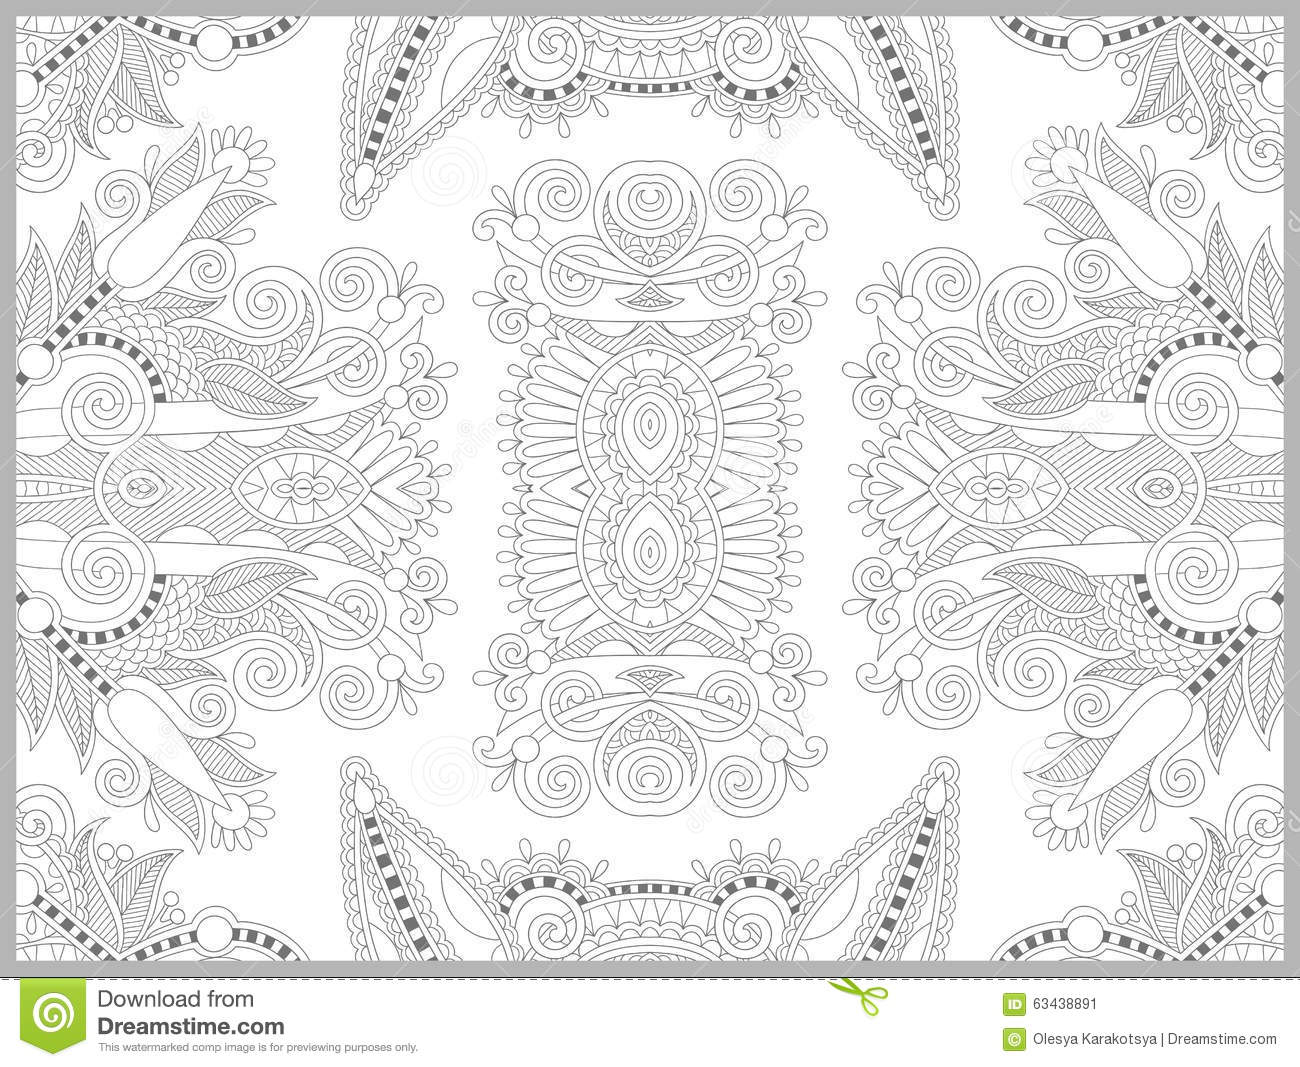 Unique coloring pages for adults flowers unique best for Unique coloring pages for adults